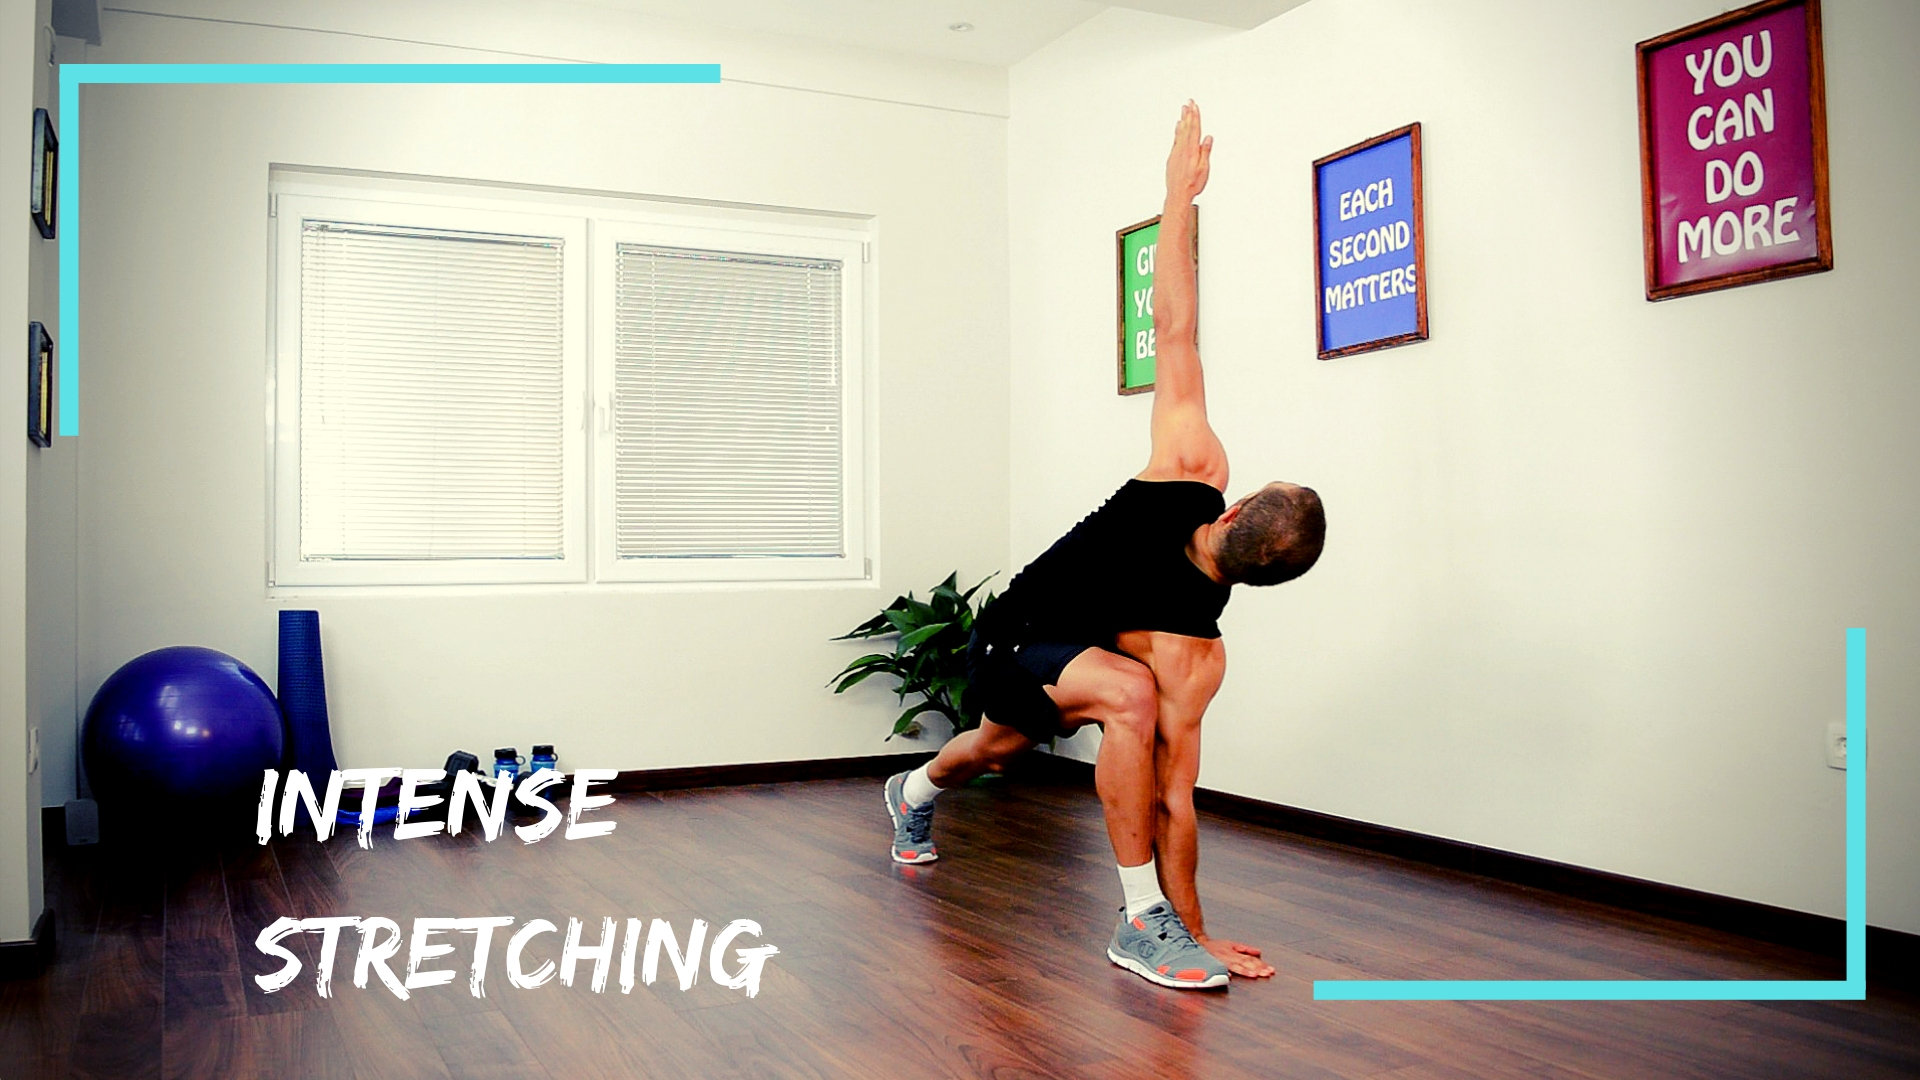 Advanced Full Body Workout at Home Without Equipment